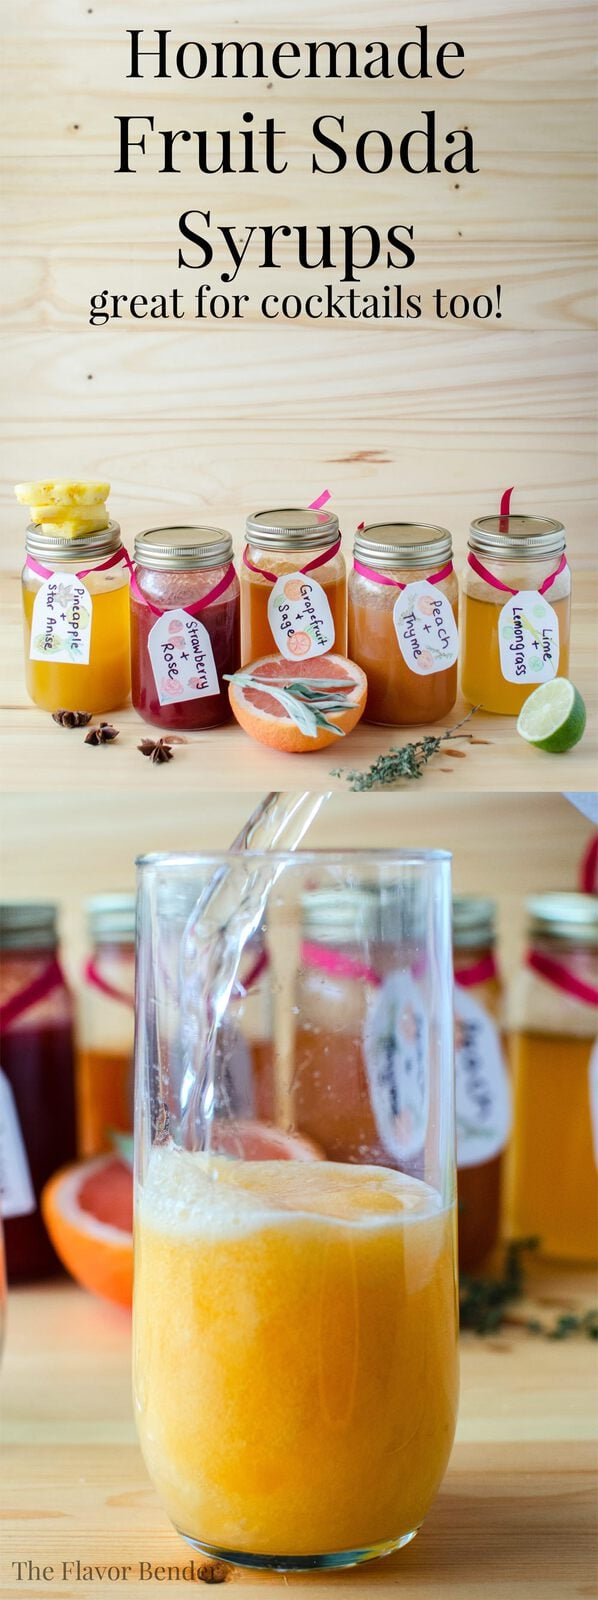 Homemade Soda Syrups - Delicious Fruit Syrups to make your own Sodas and cocktails! Choose from Grapefruit, Peach, Strawberry, Lime, and Pineapple all with awesome spice and herb twists!